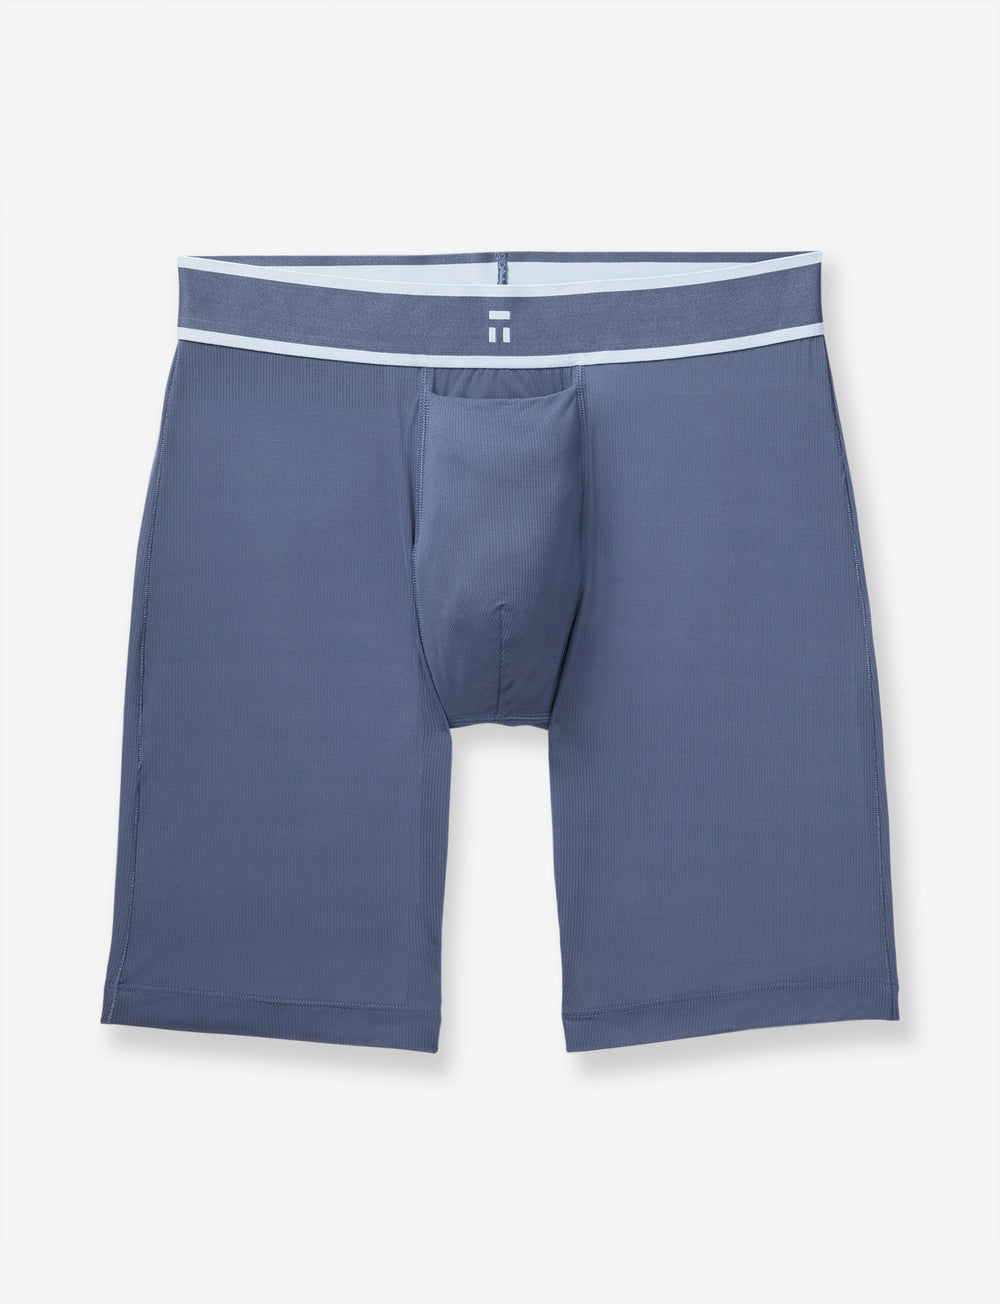 Air Icon Boxer Brief Details Image